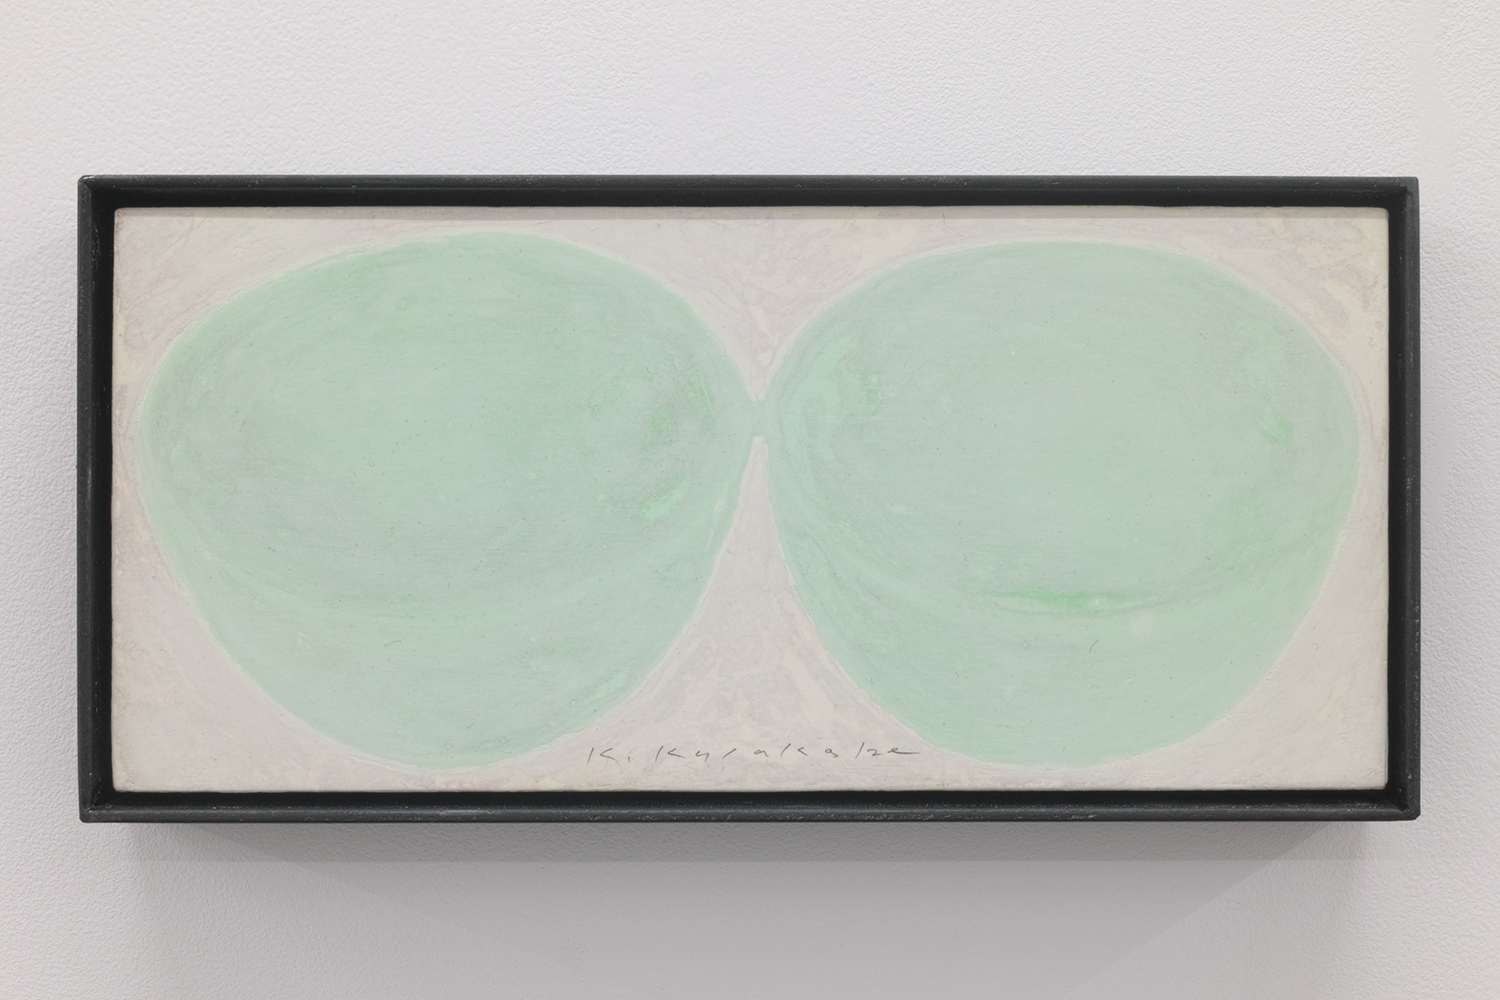 実物大という大きさ/Full-scale size|Acrylic paint, luminescent pigment, cotton on panel|115 x 240 x 40 mm|2019<br>¥50,000-100,000